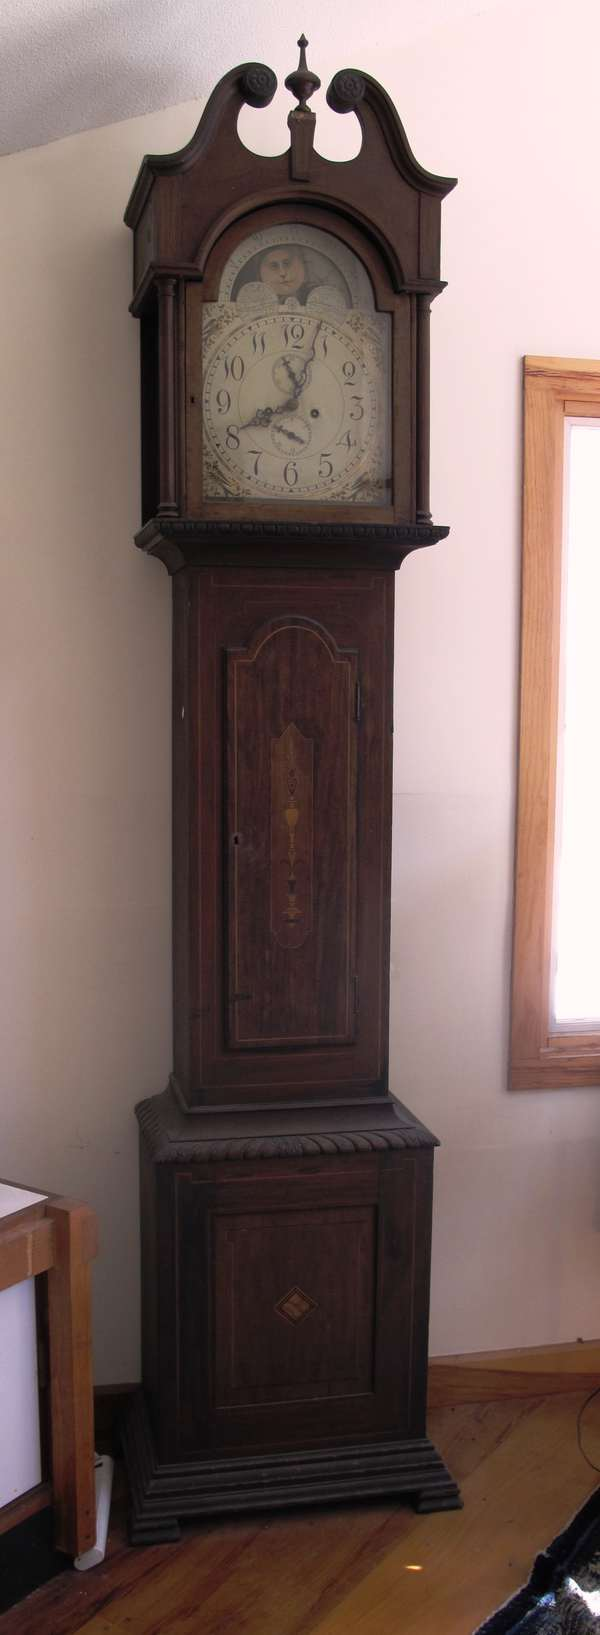 Inlaid mahogany tall Grandfather clock, weight driven brass works signed on back of works